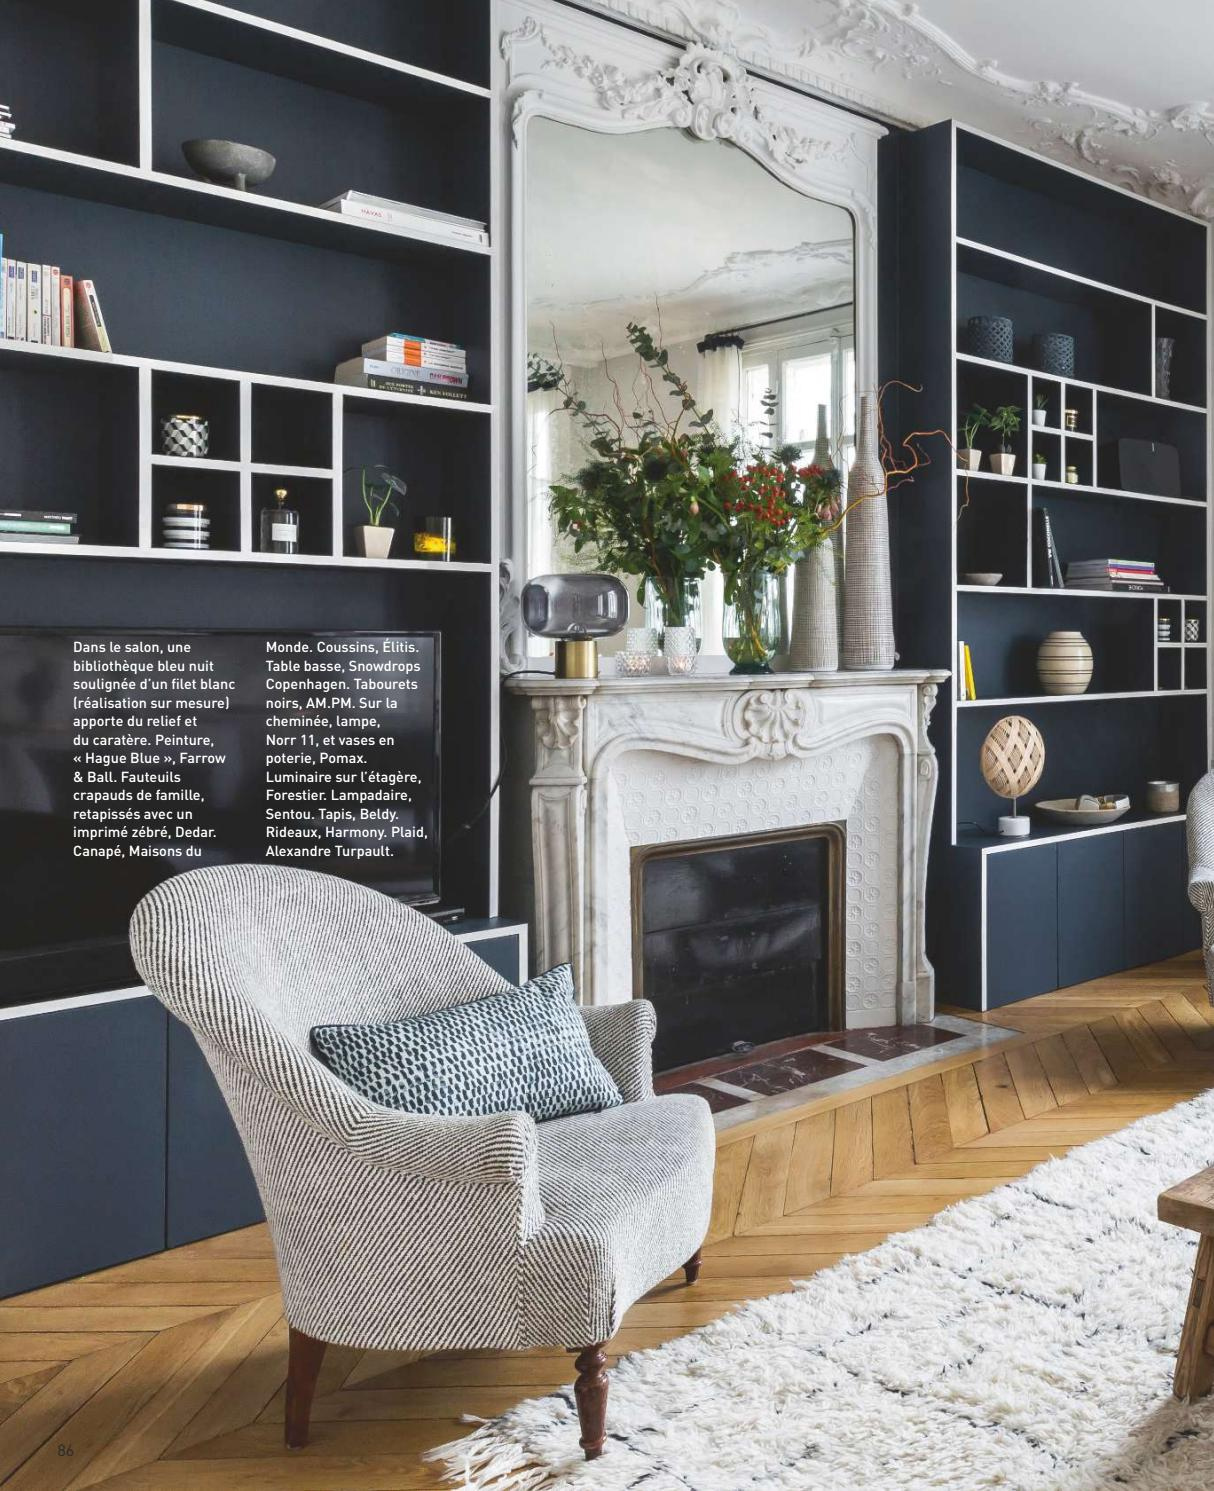 Revendeur Farrow And Ball Bordeaux ewqsafaf | vebuka